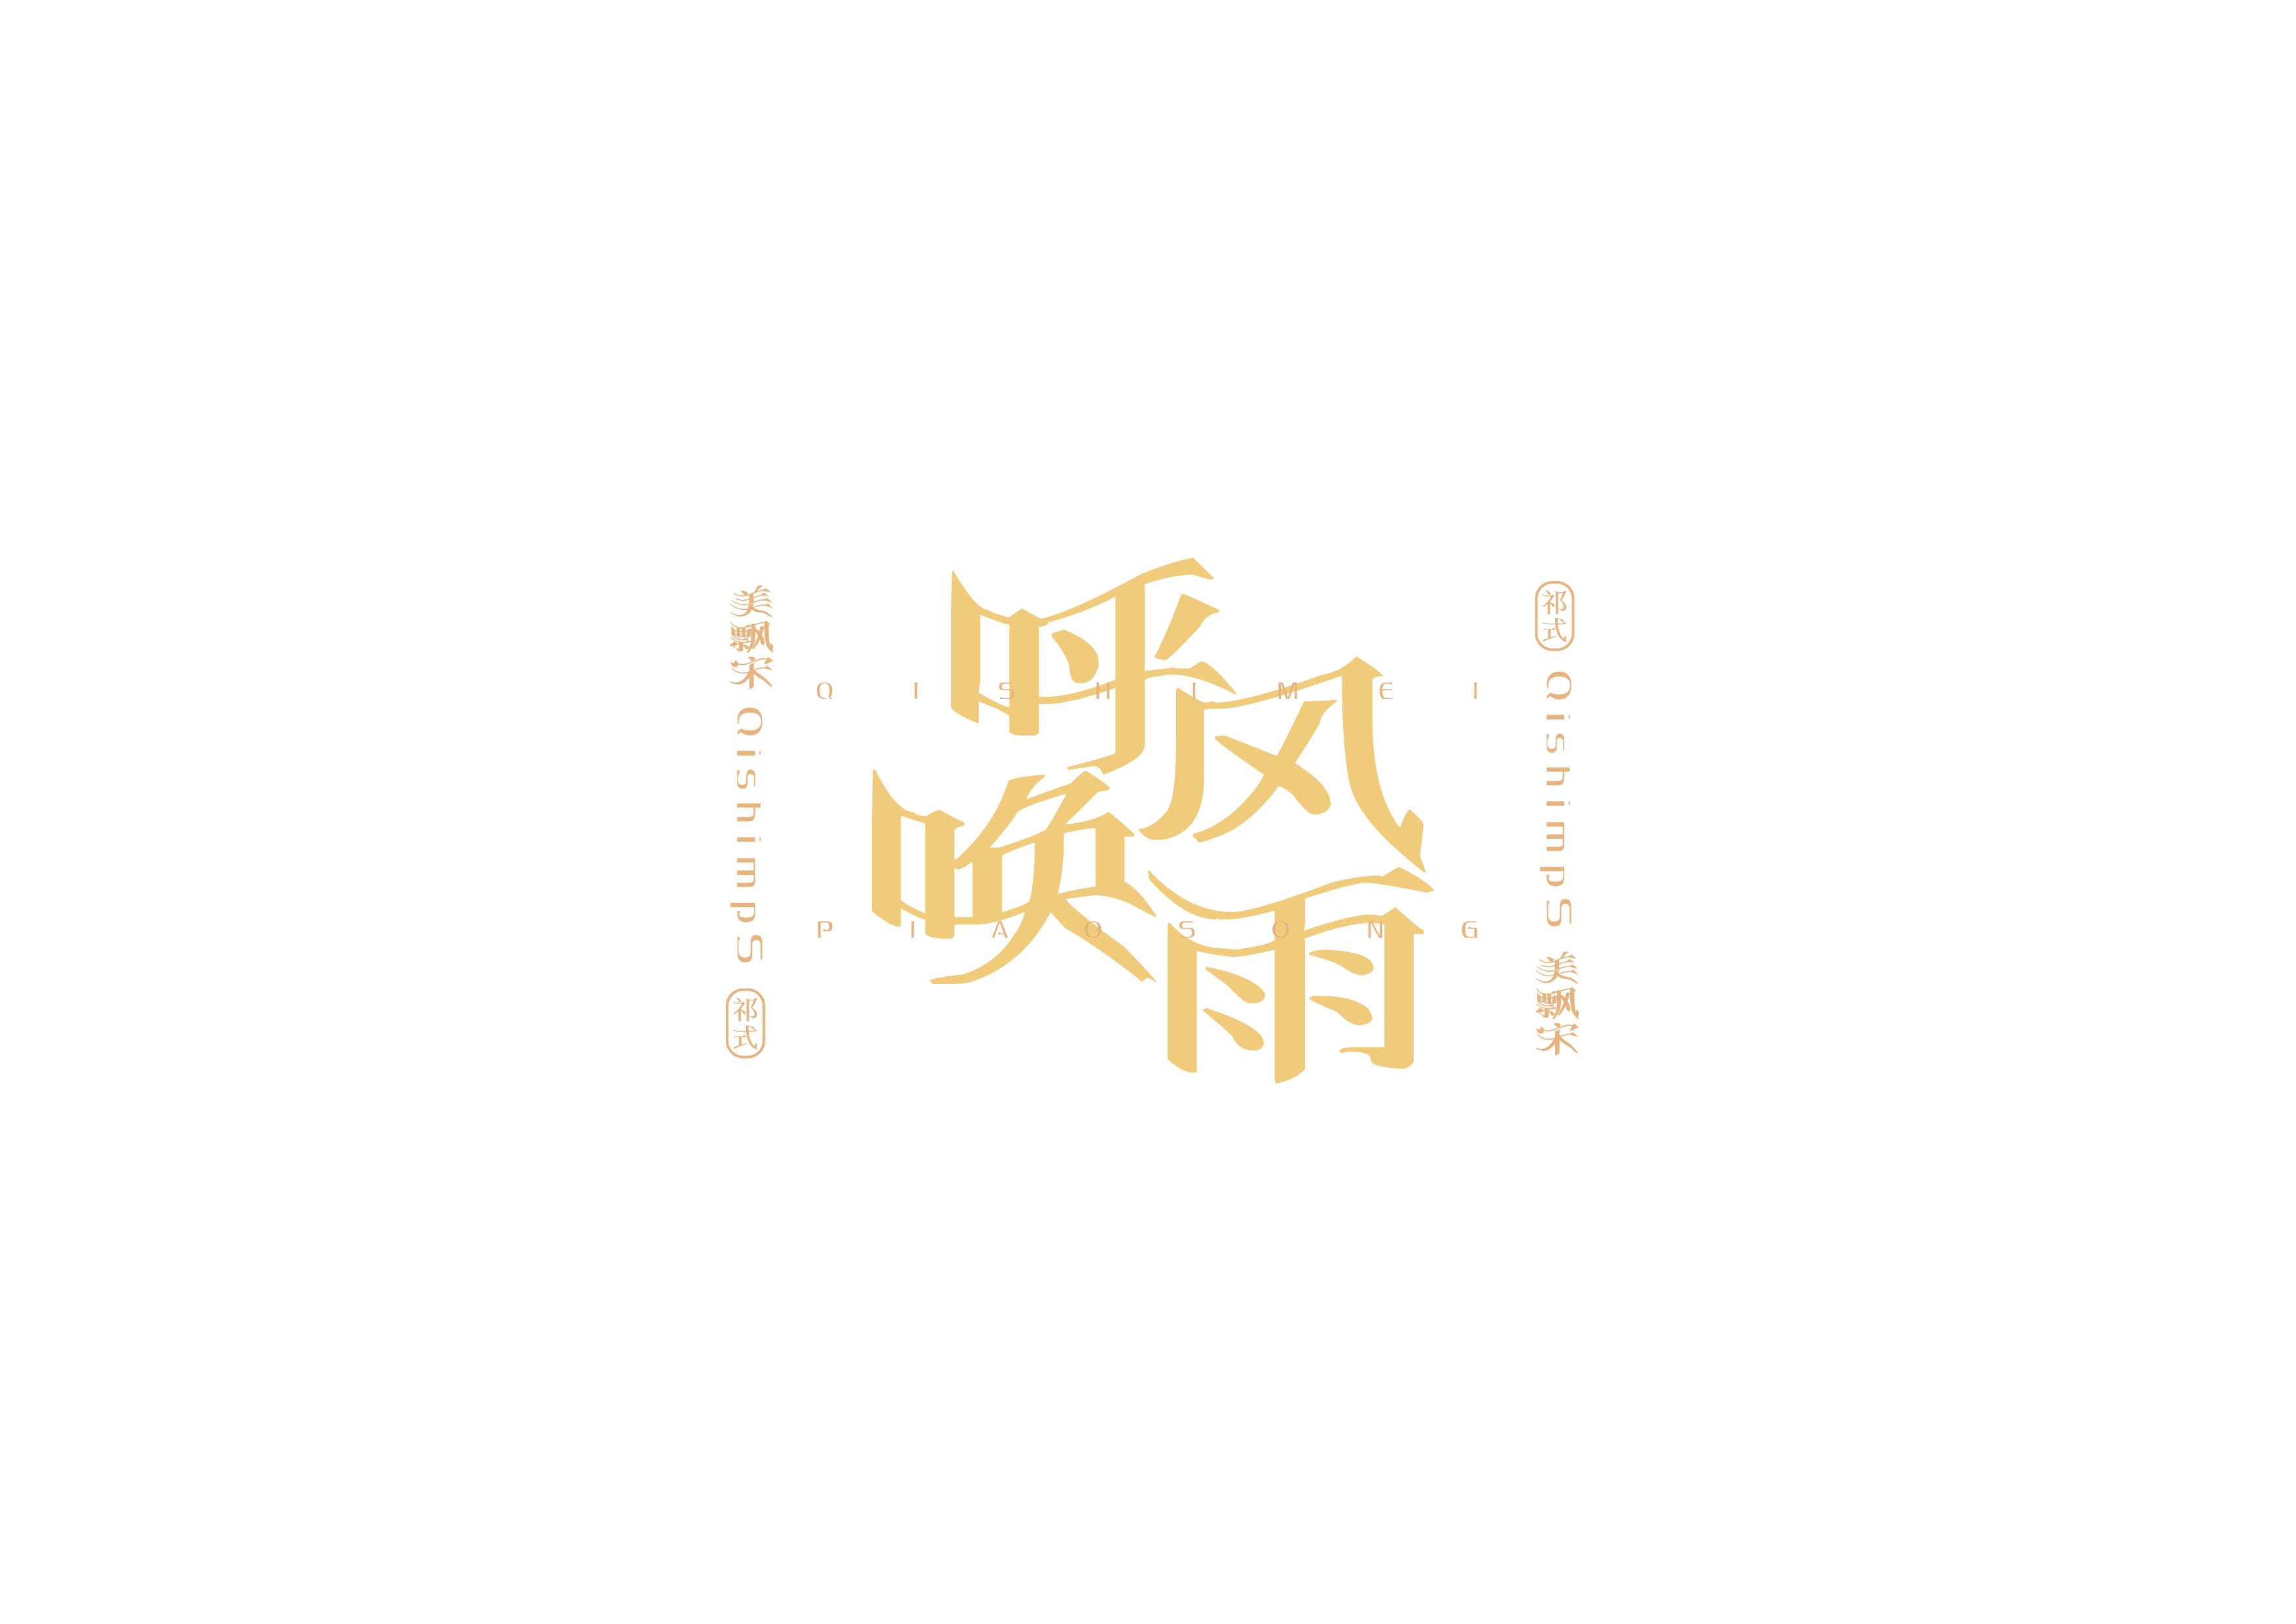 88P Collection of the latest Chinese font design schemes in 2021 #.70